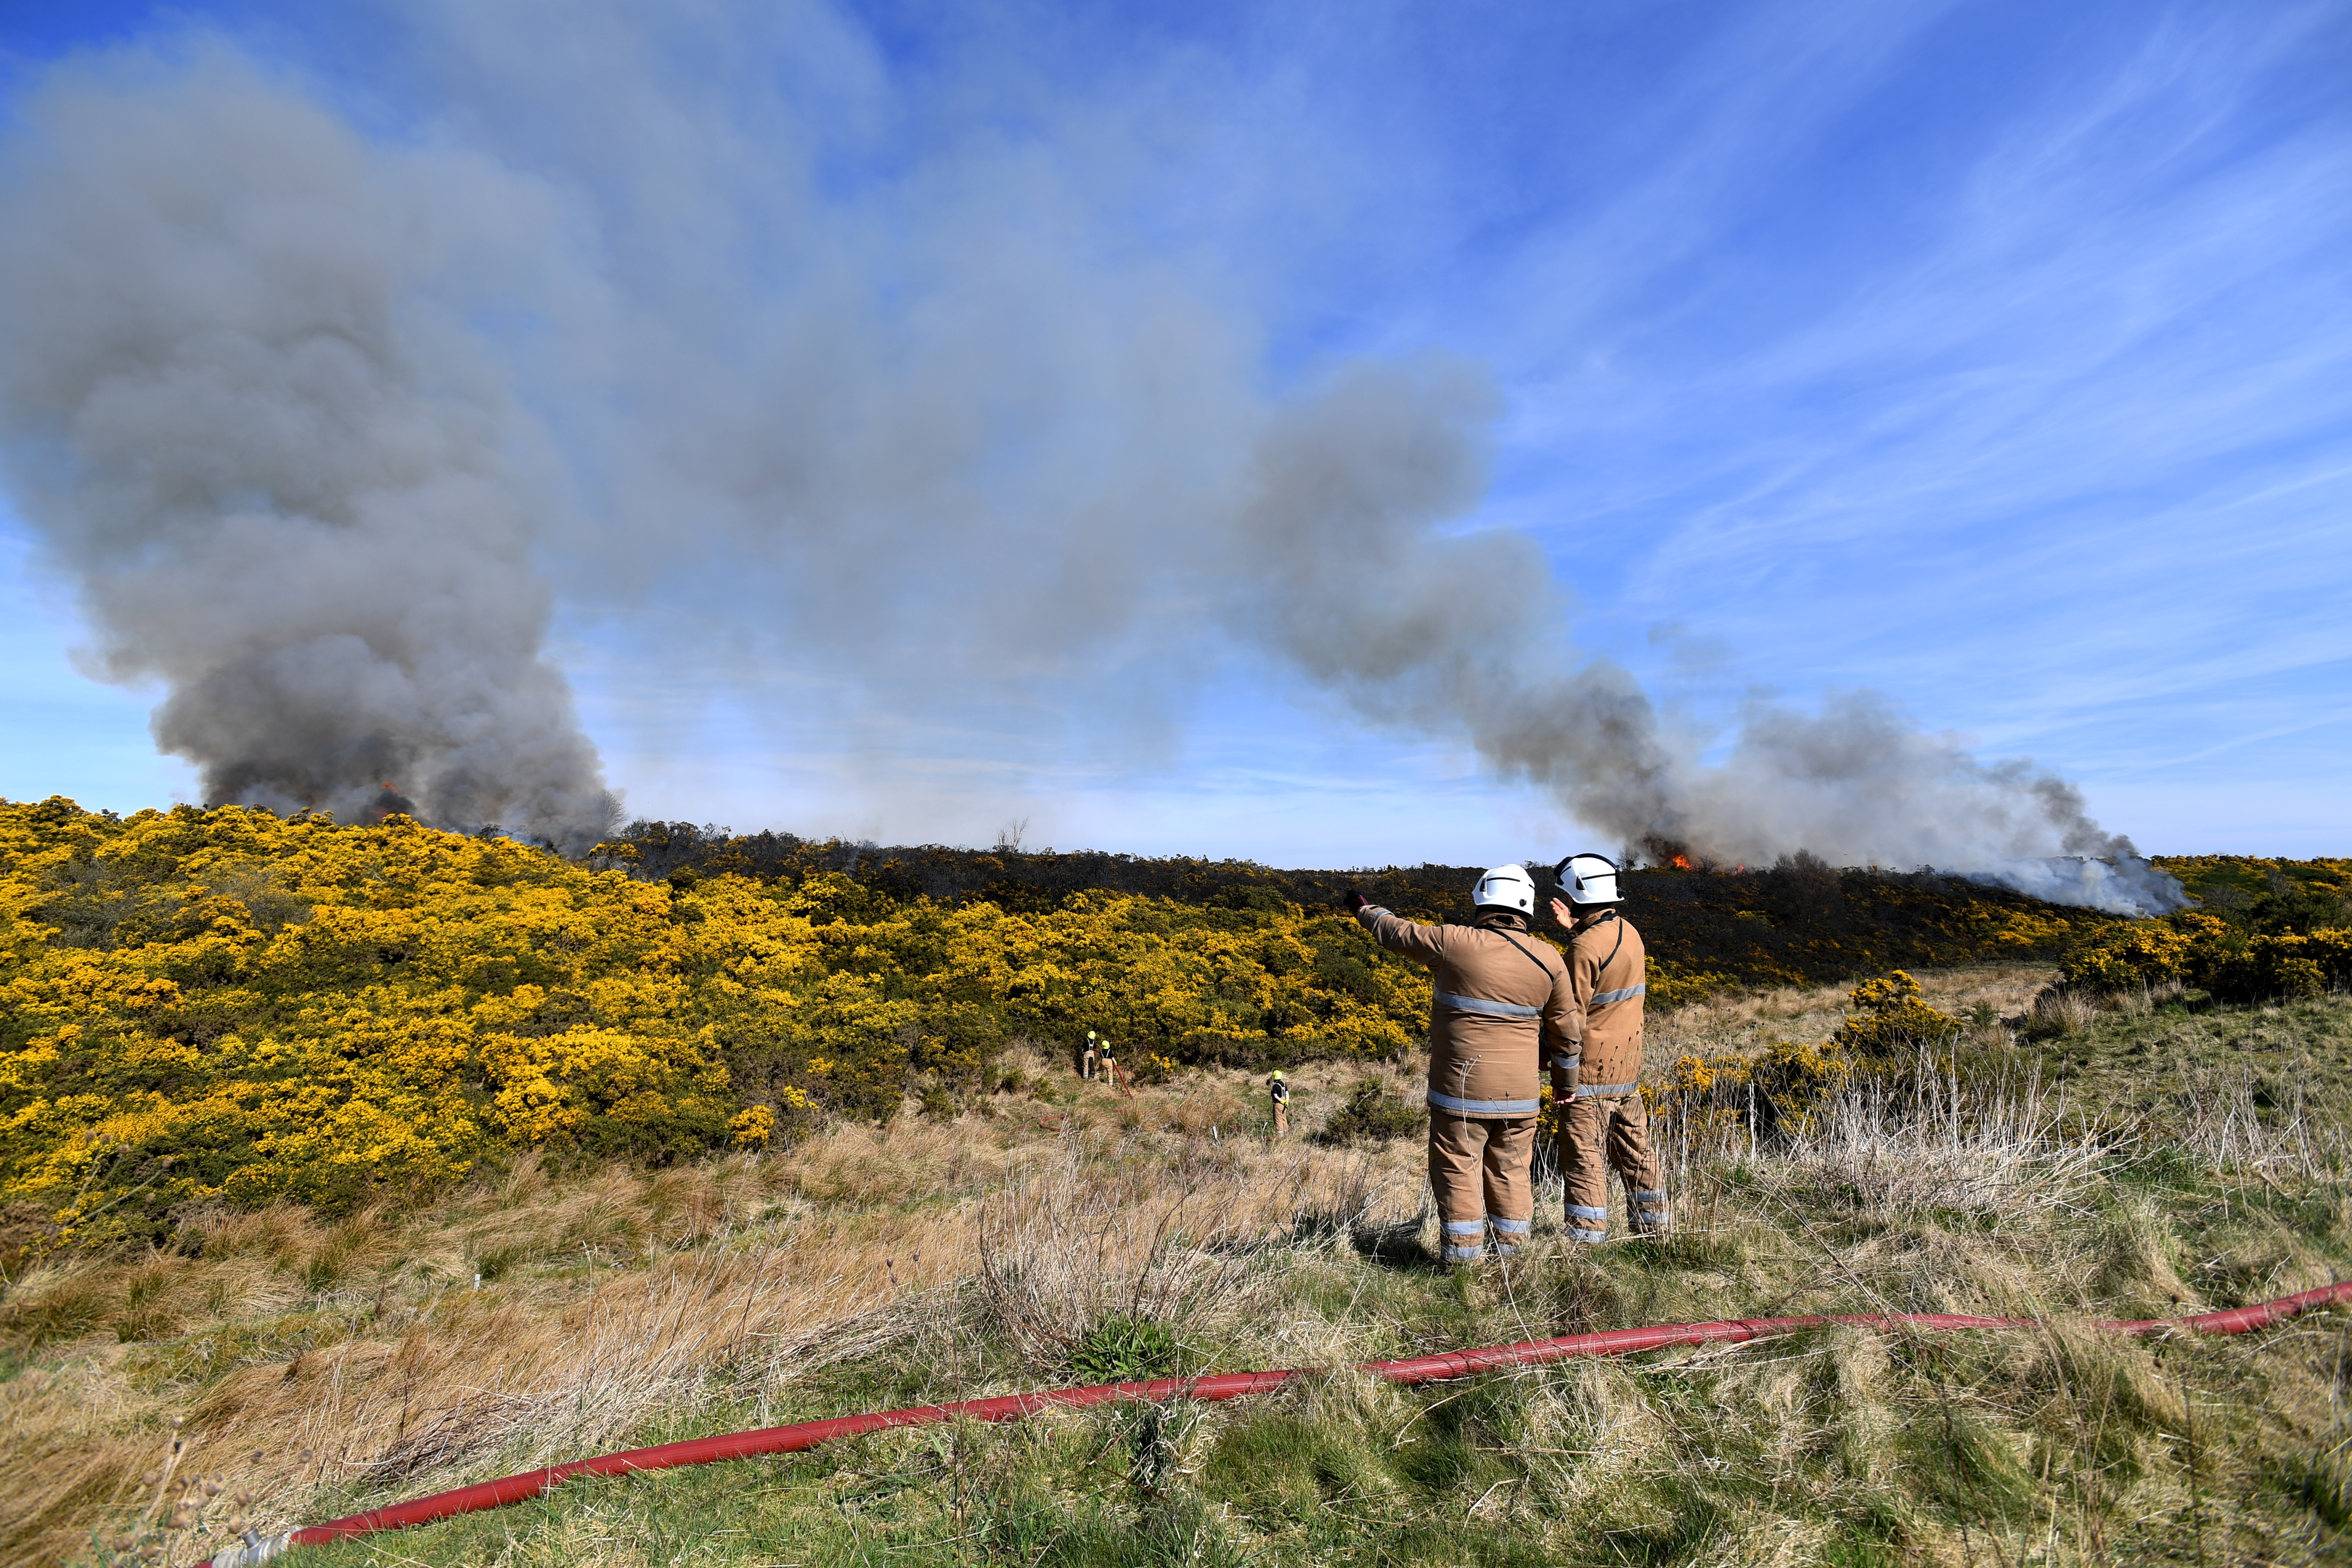 flames: Fire crews tackled the blaze for around eight hours on Saturday. Pictures by kath flannery